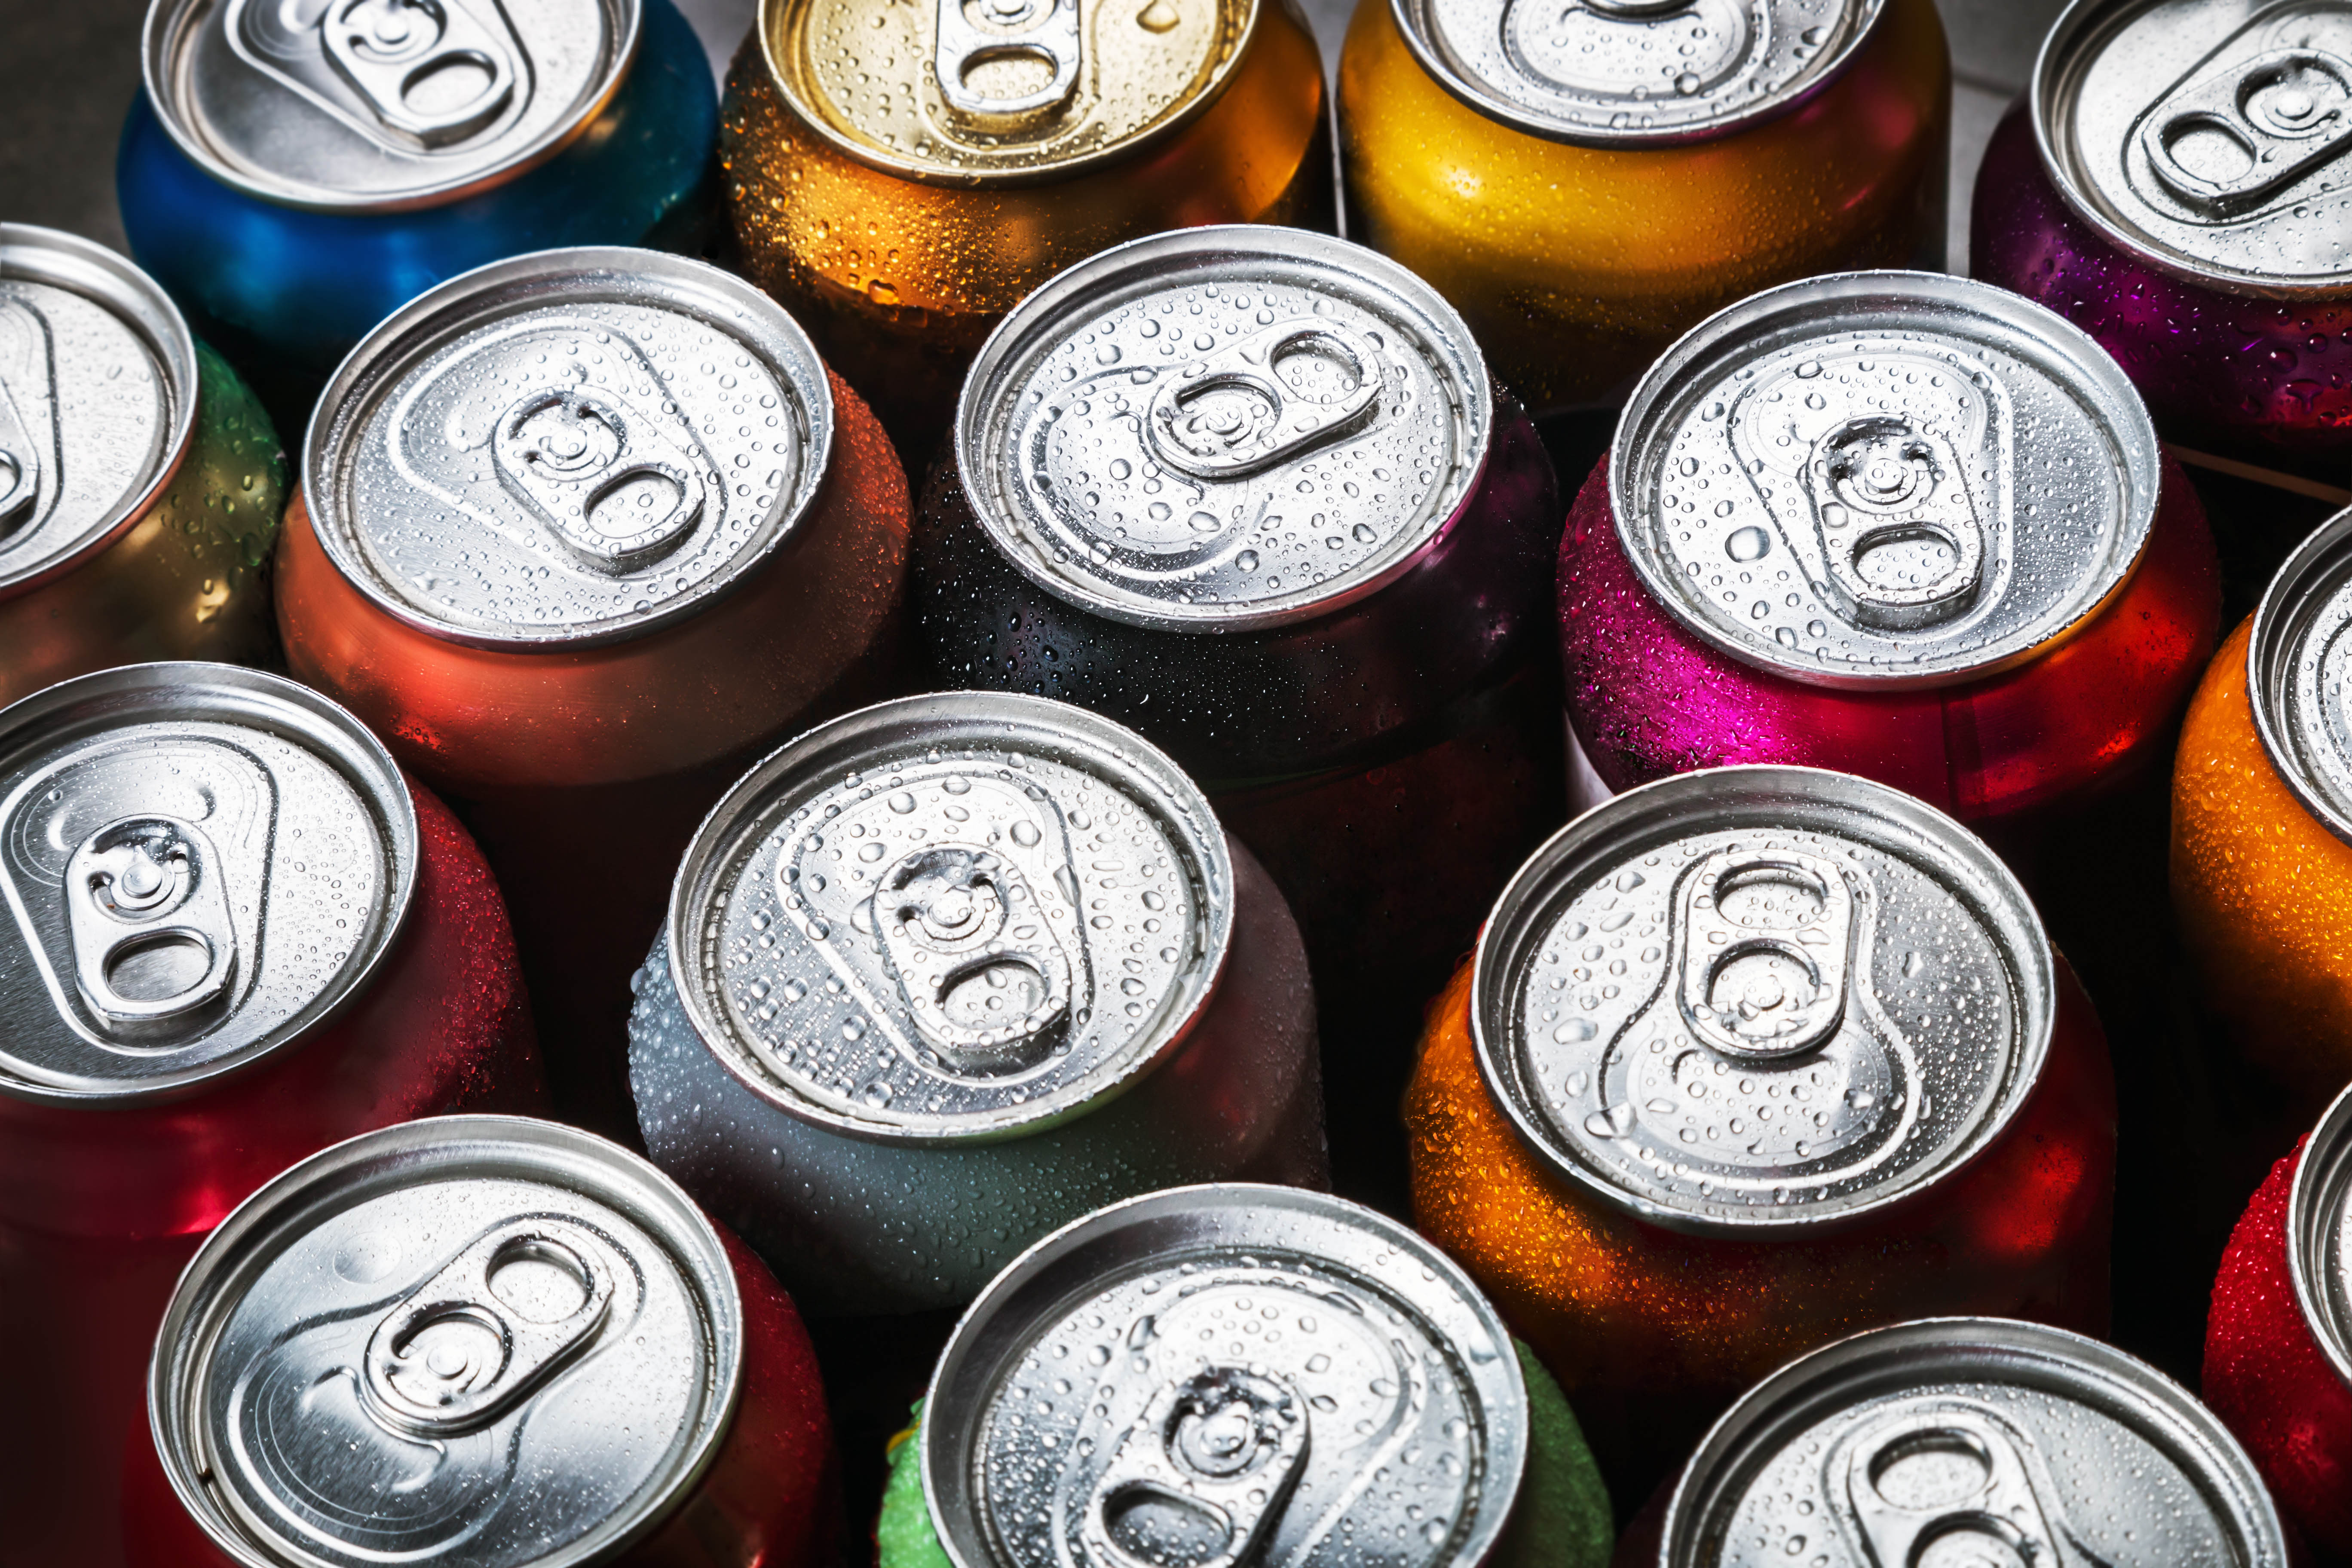 Image_4_Cans_Small